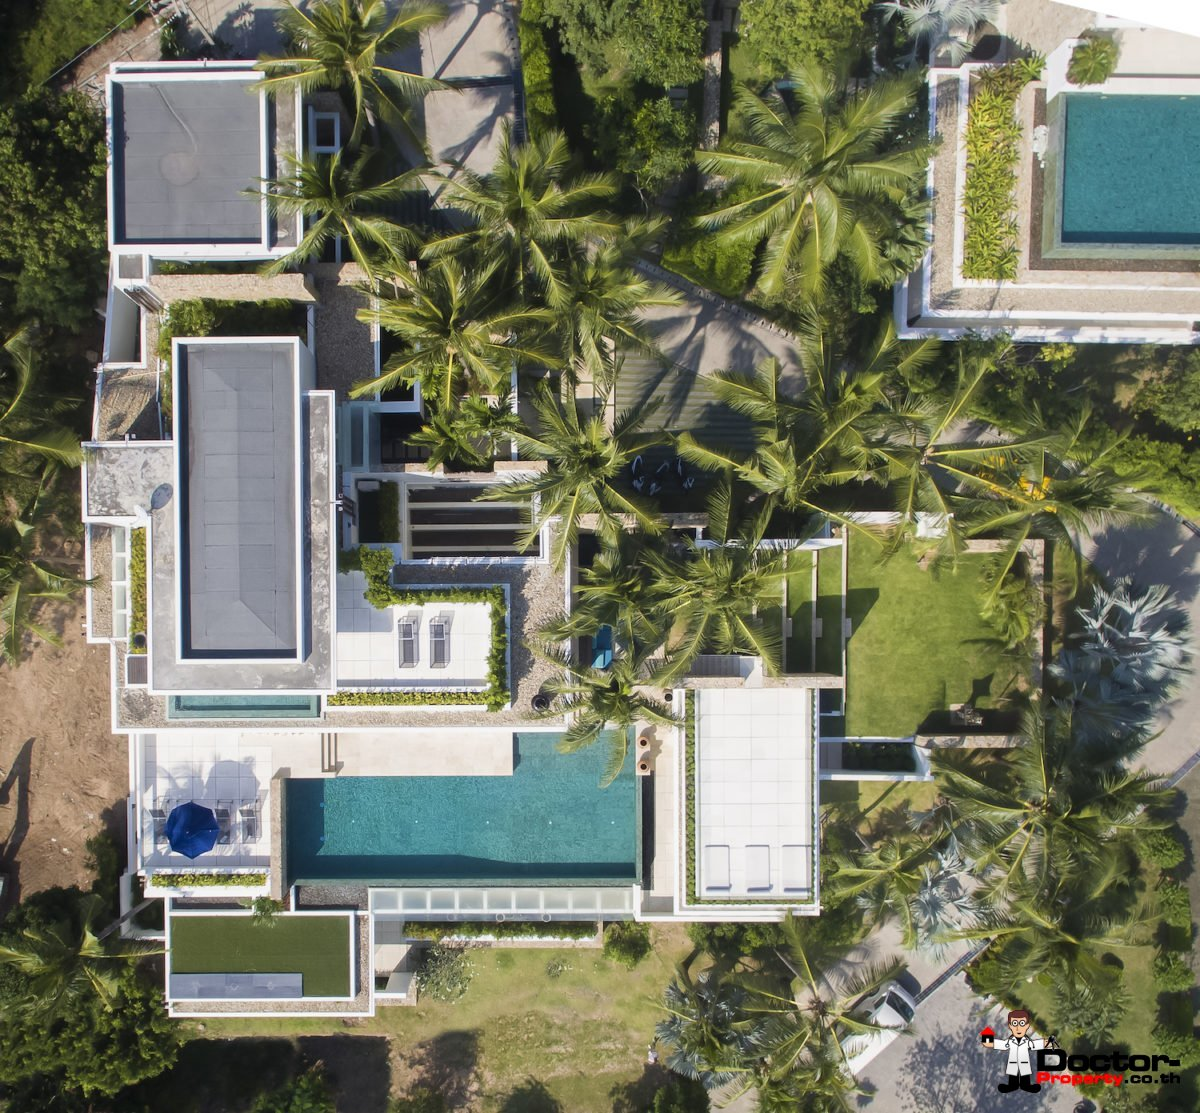 6 Bedroom Luxury Pool Villa, Choeng Mon, Koh Samui — For Sale